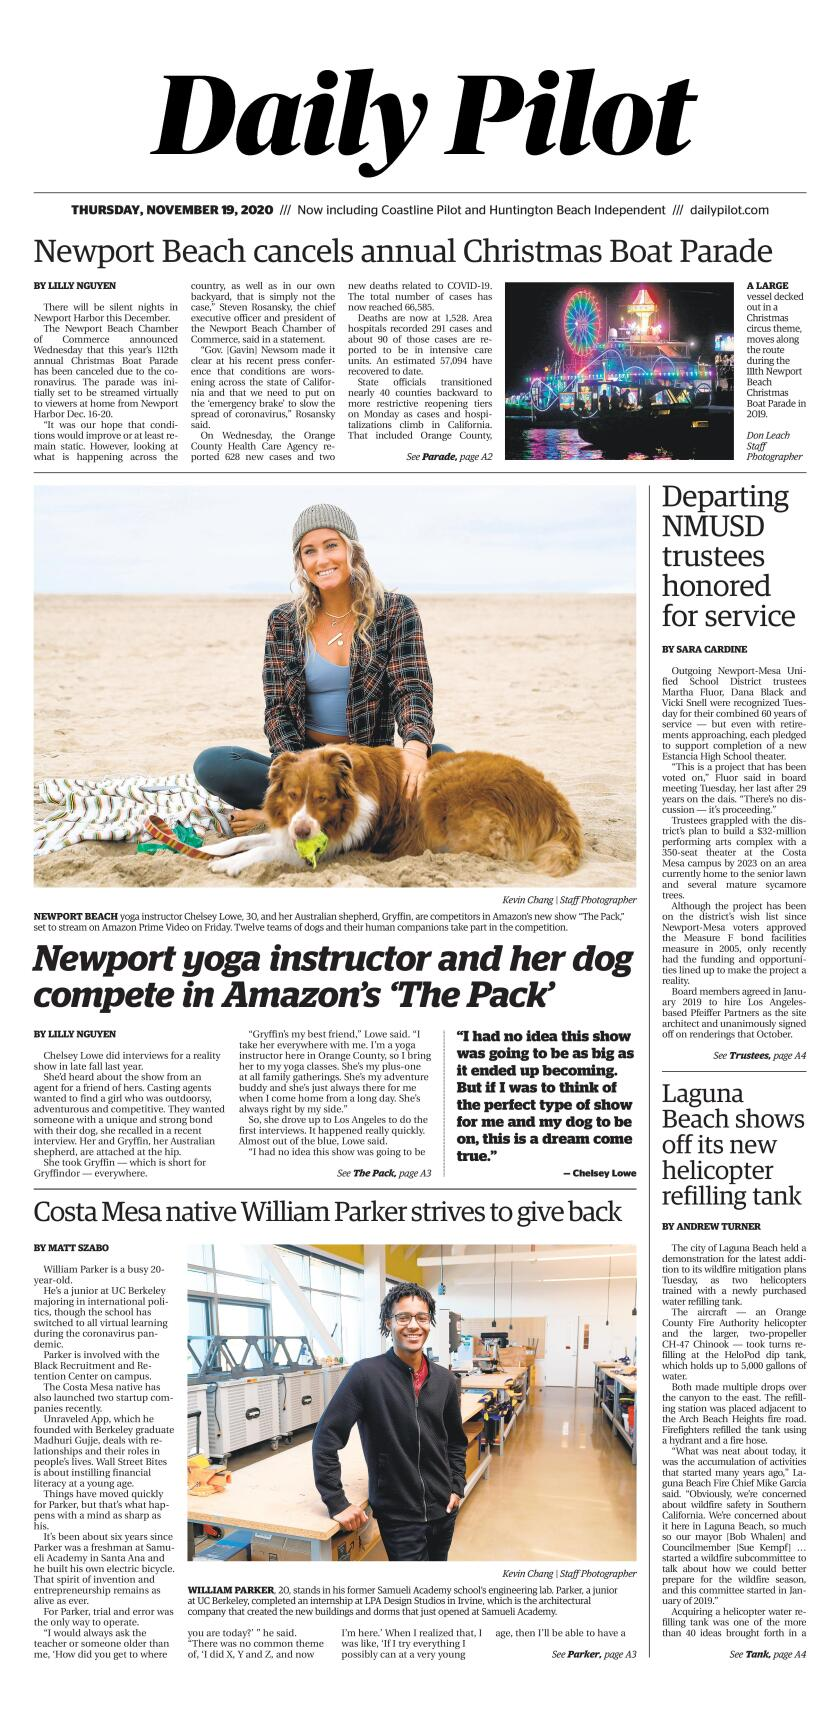 Christmas Gift Ideas For Employees 2020 Los Angeles Daily Pilot e Newspaper: Thursday, Nov. 19, 2020   Los Angeles Times